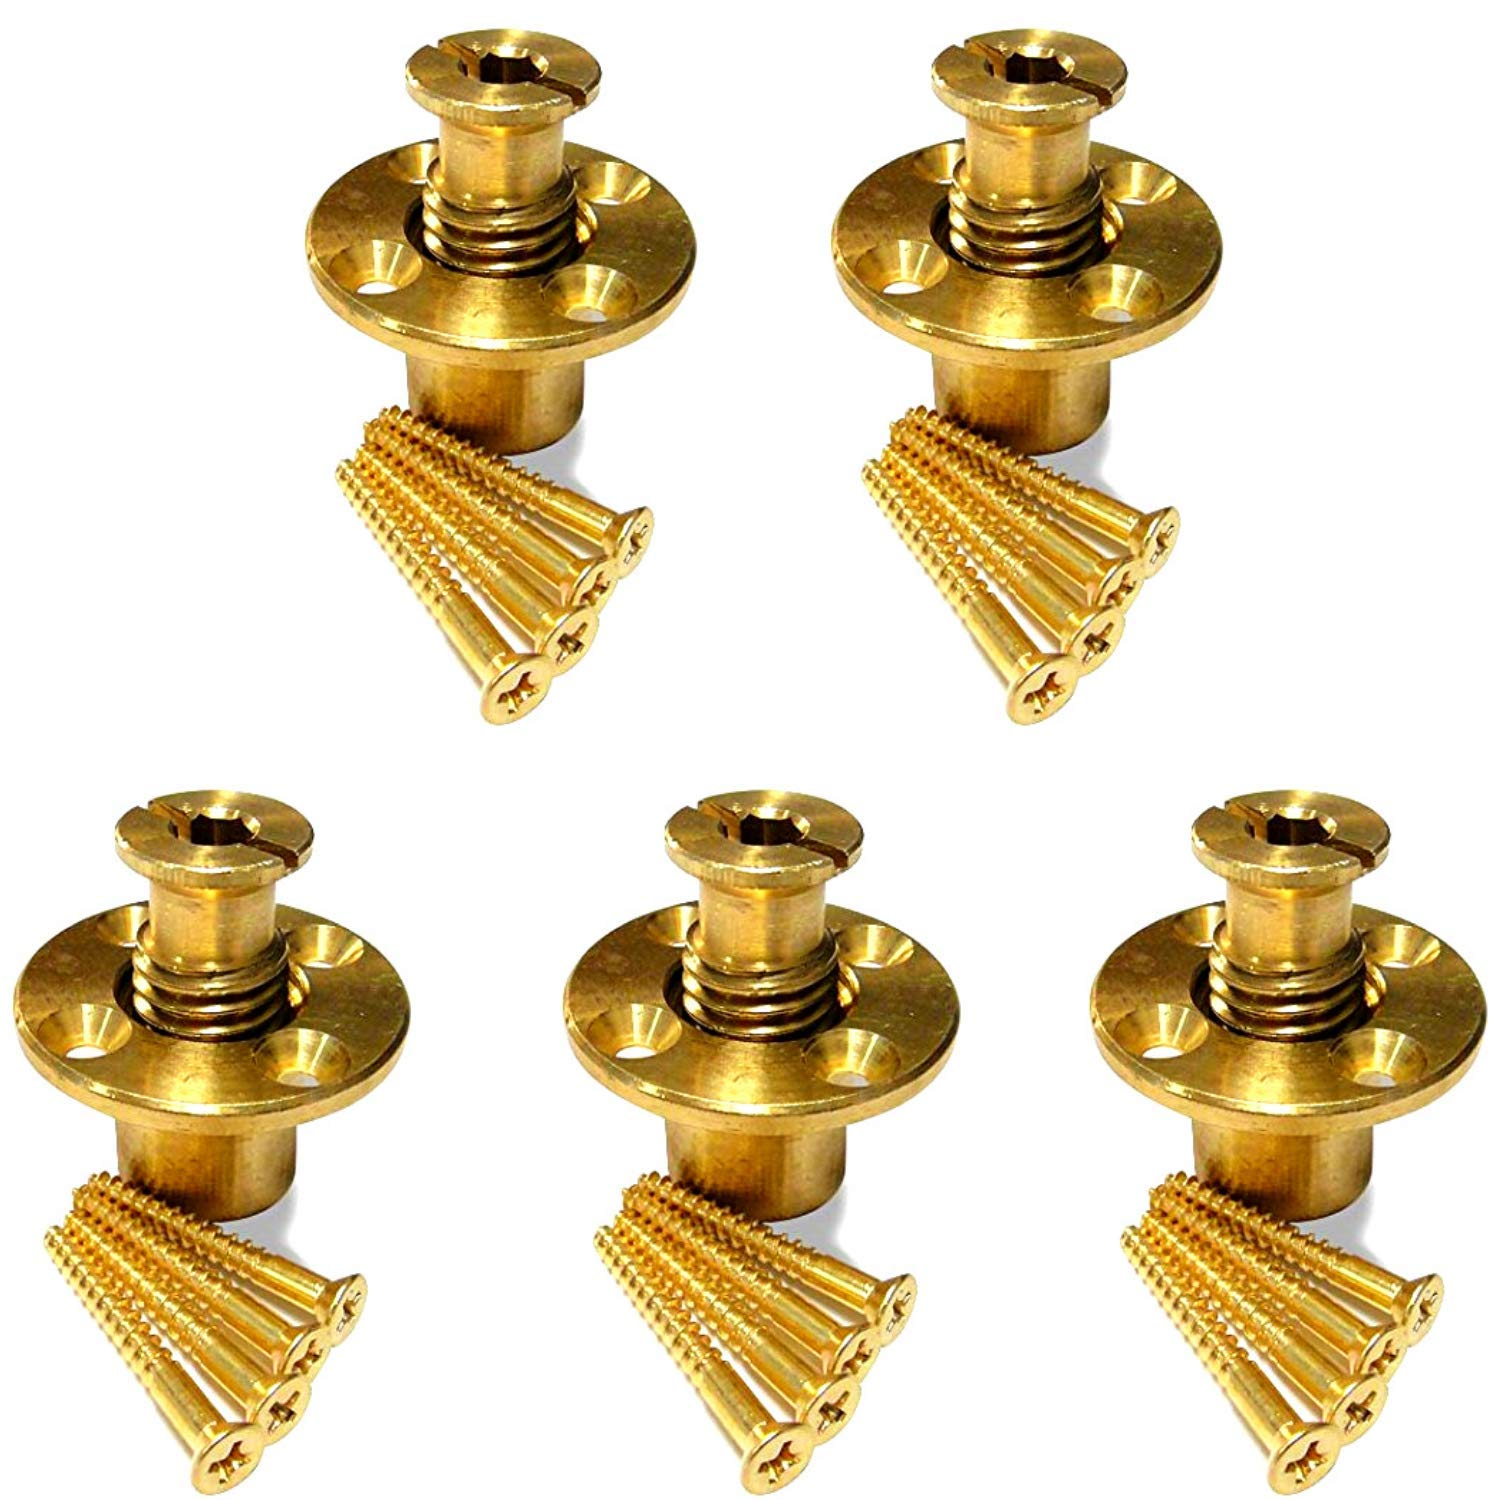 Wood Deck Brass Anchor For Pool Safety Cover 5 Pack Buy Online In Guernsey At Guernsey Desertcart Com Productid 18565452